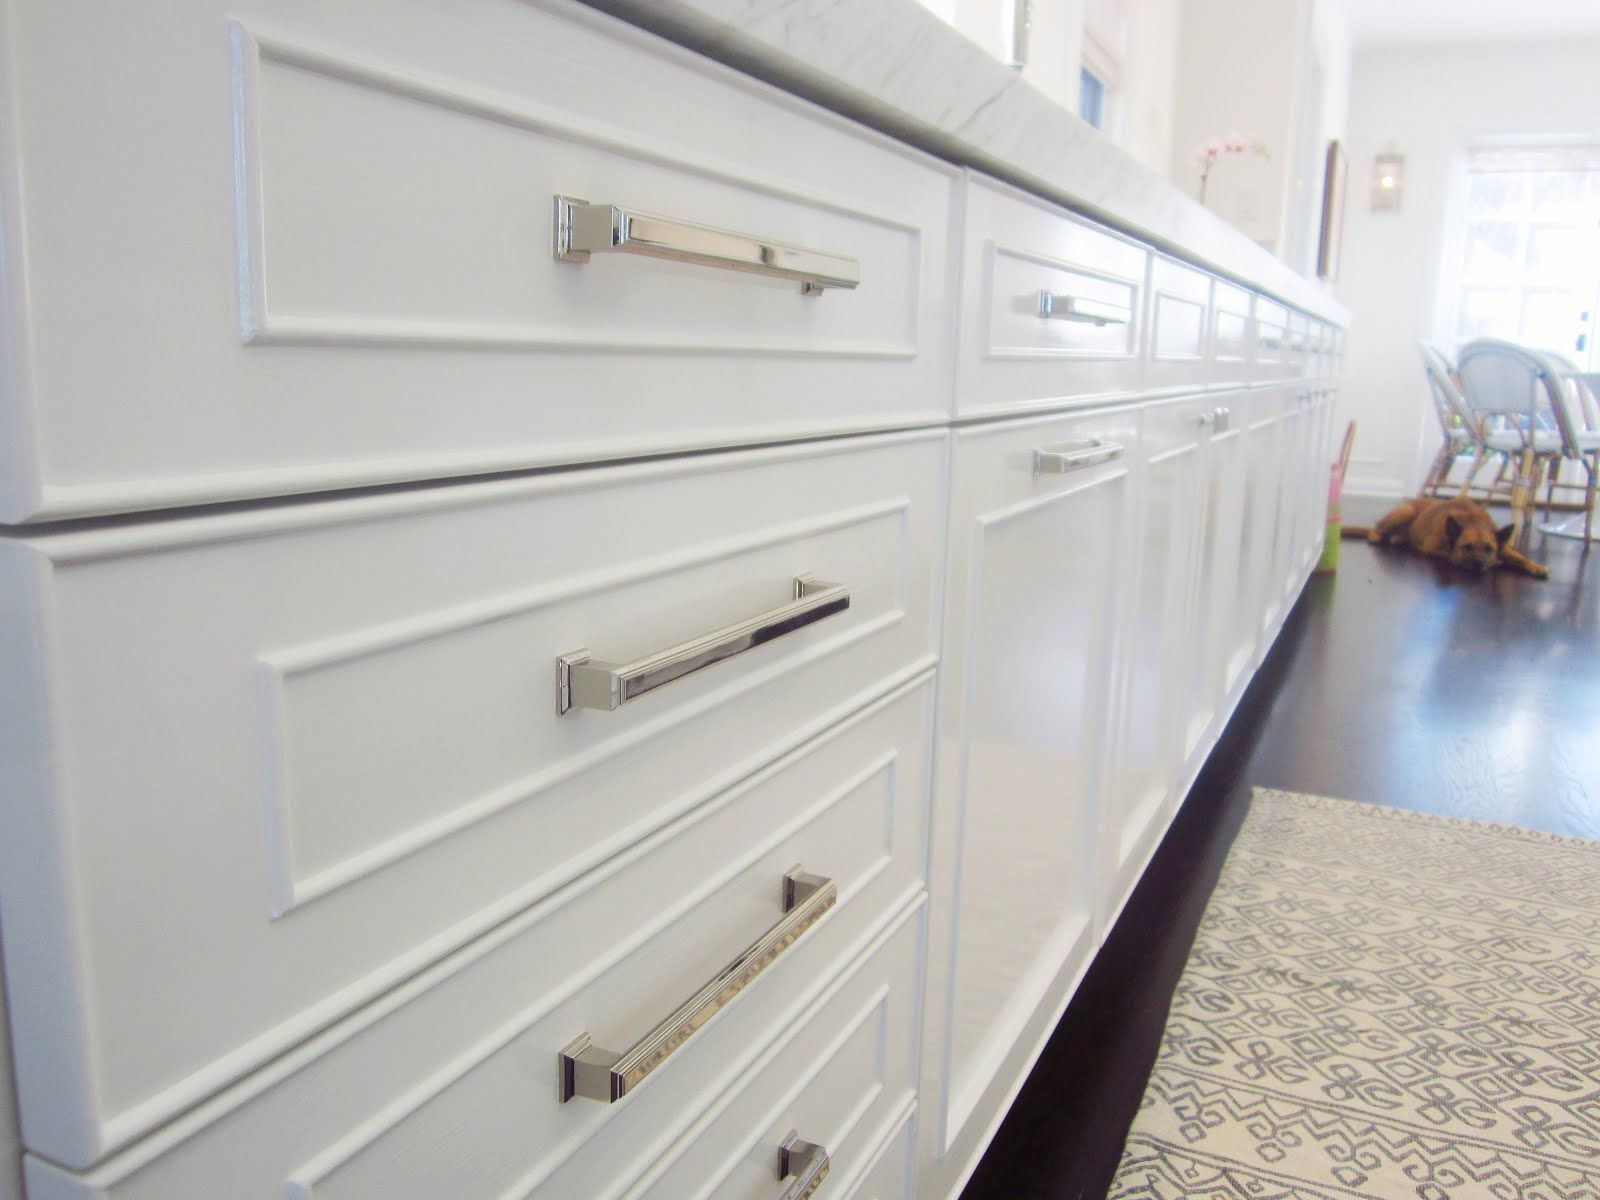 Exceptionnel Hardware For White Kitchens | Polished Nickel Hardware For Drawer Pulls And Cabinet  Knobs Add .